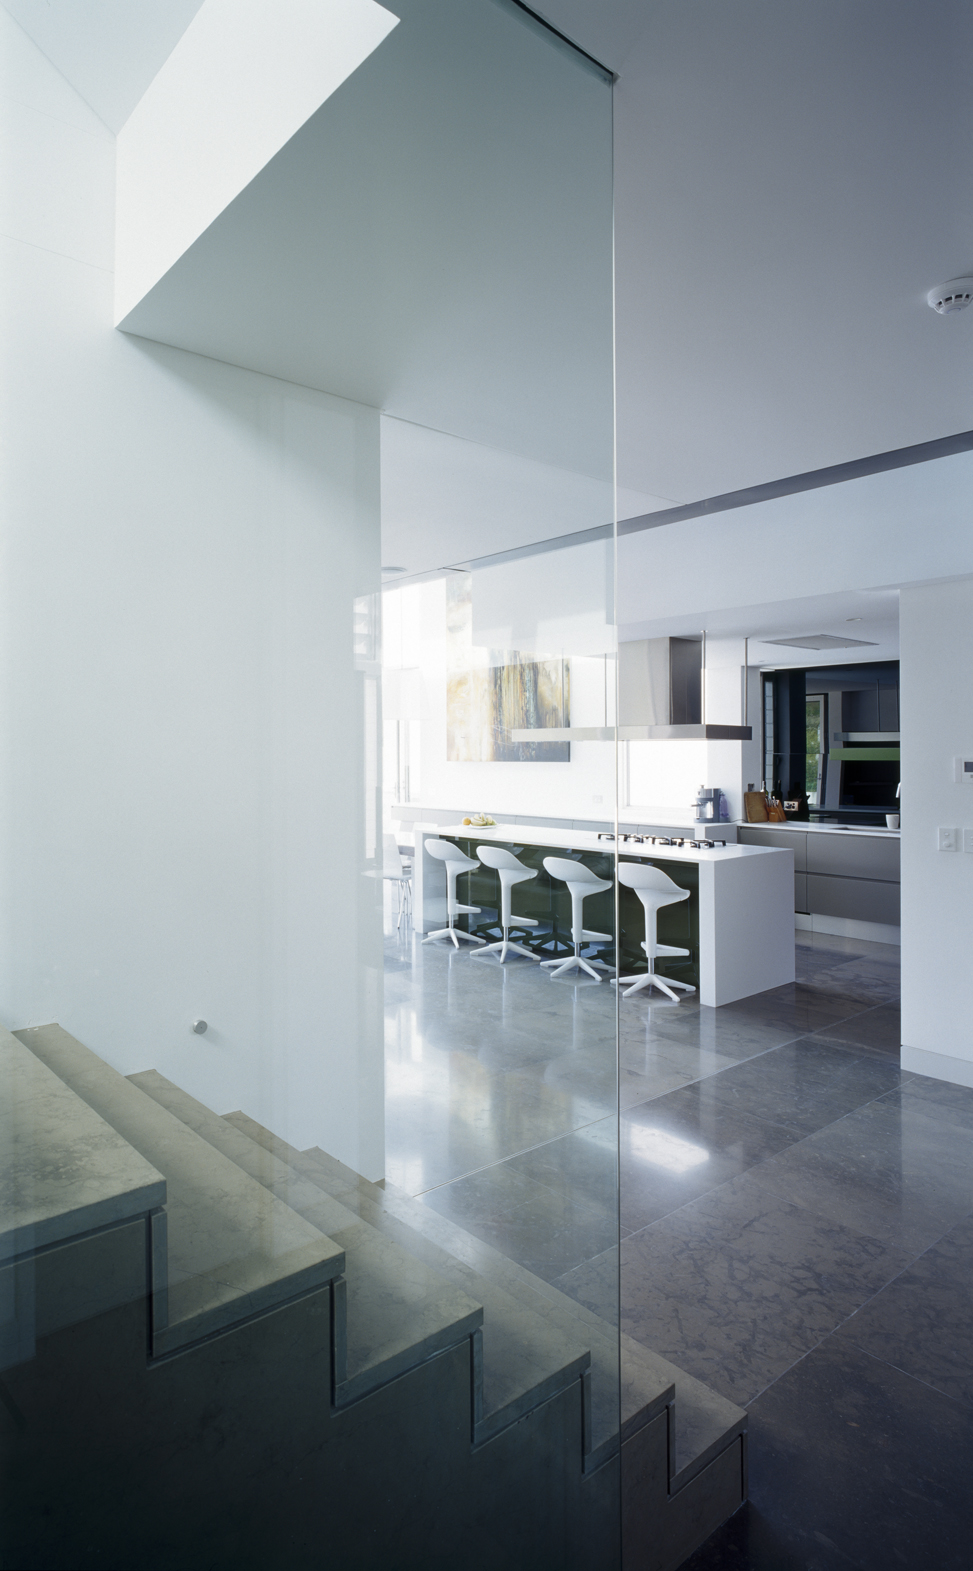 South Eastern Michigan S Premiere Kitchen: Minosa: Dover Height Project Wins Corian Design Award